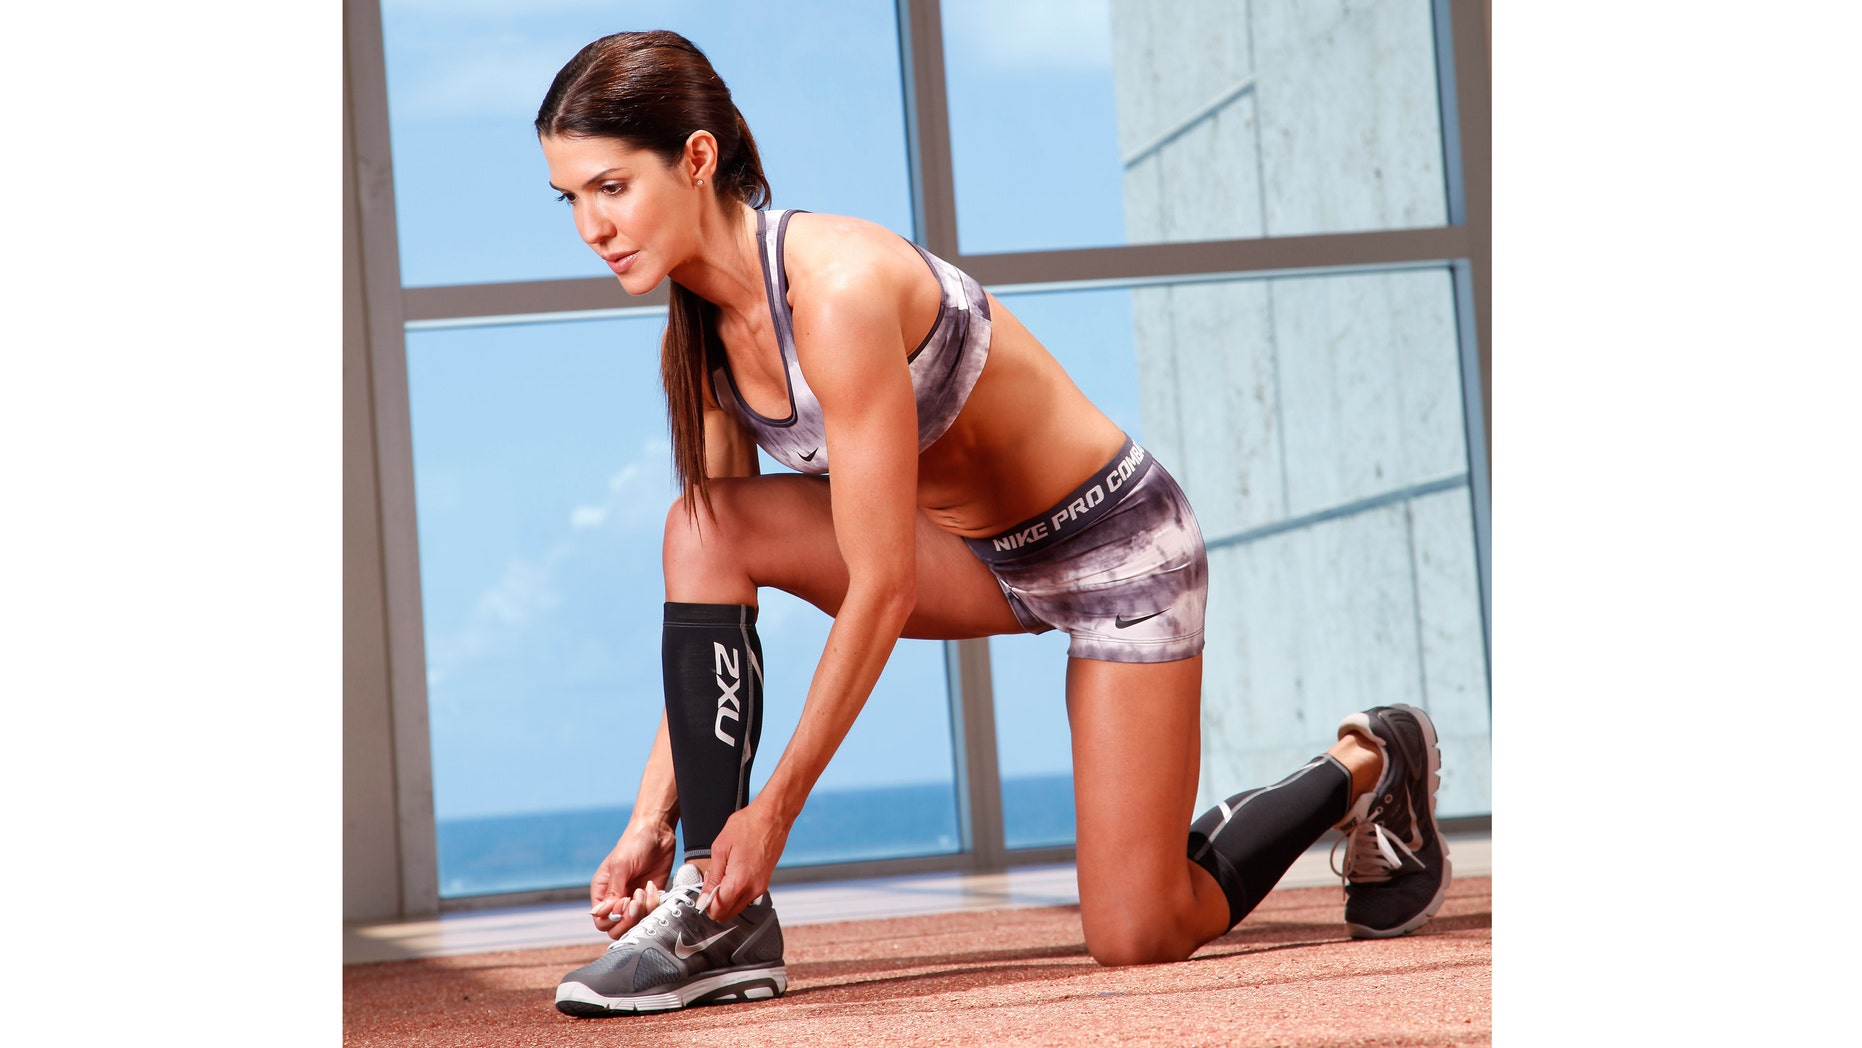 Runners have a love-hate relationship with pain.